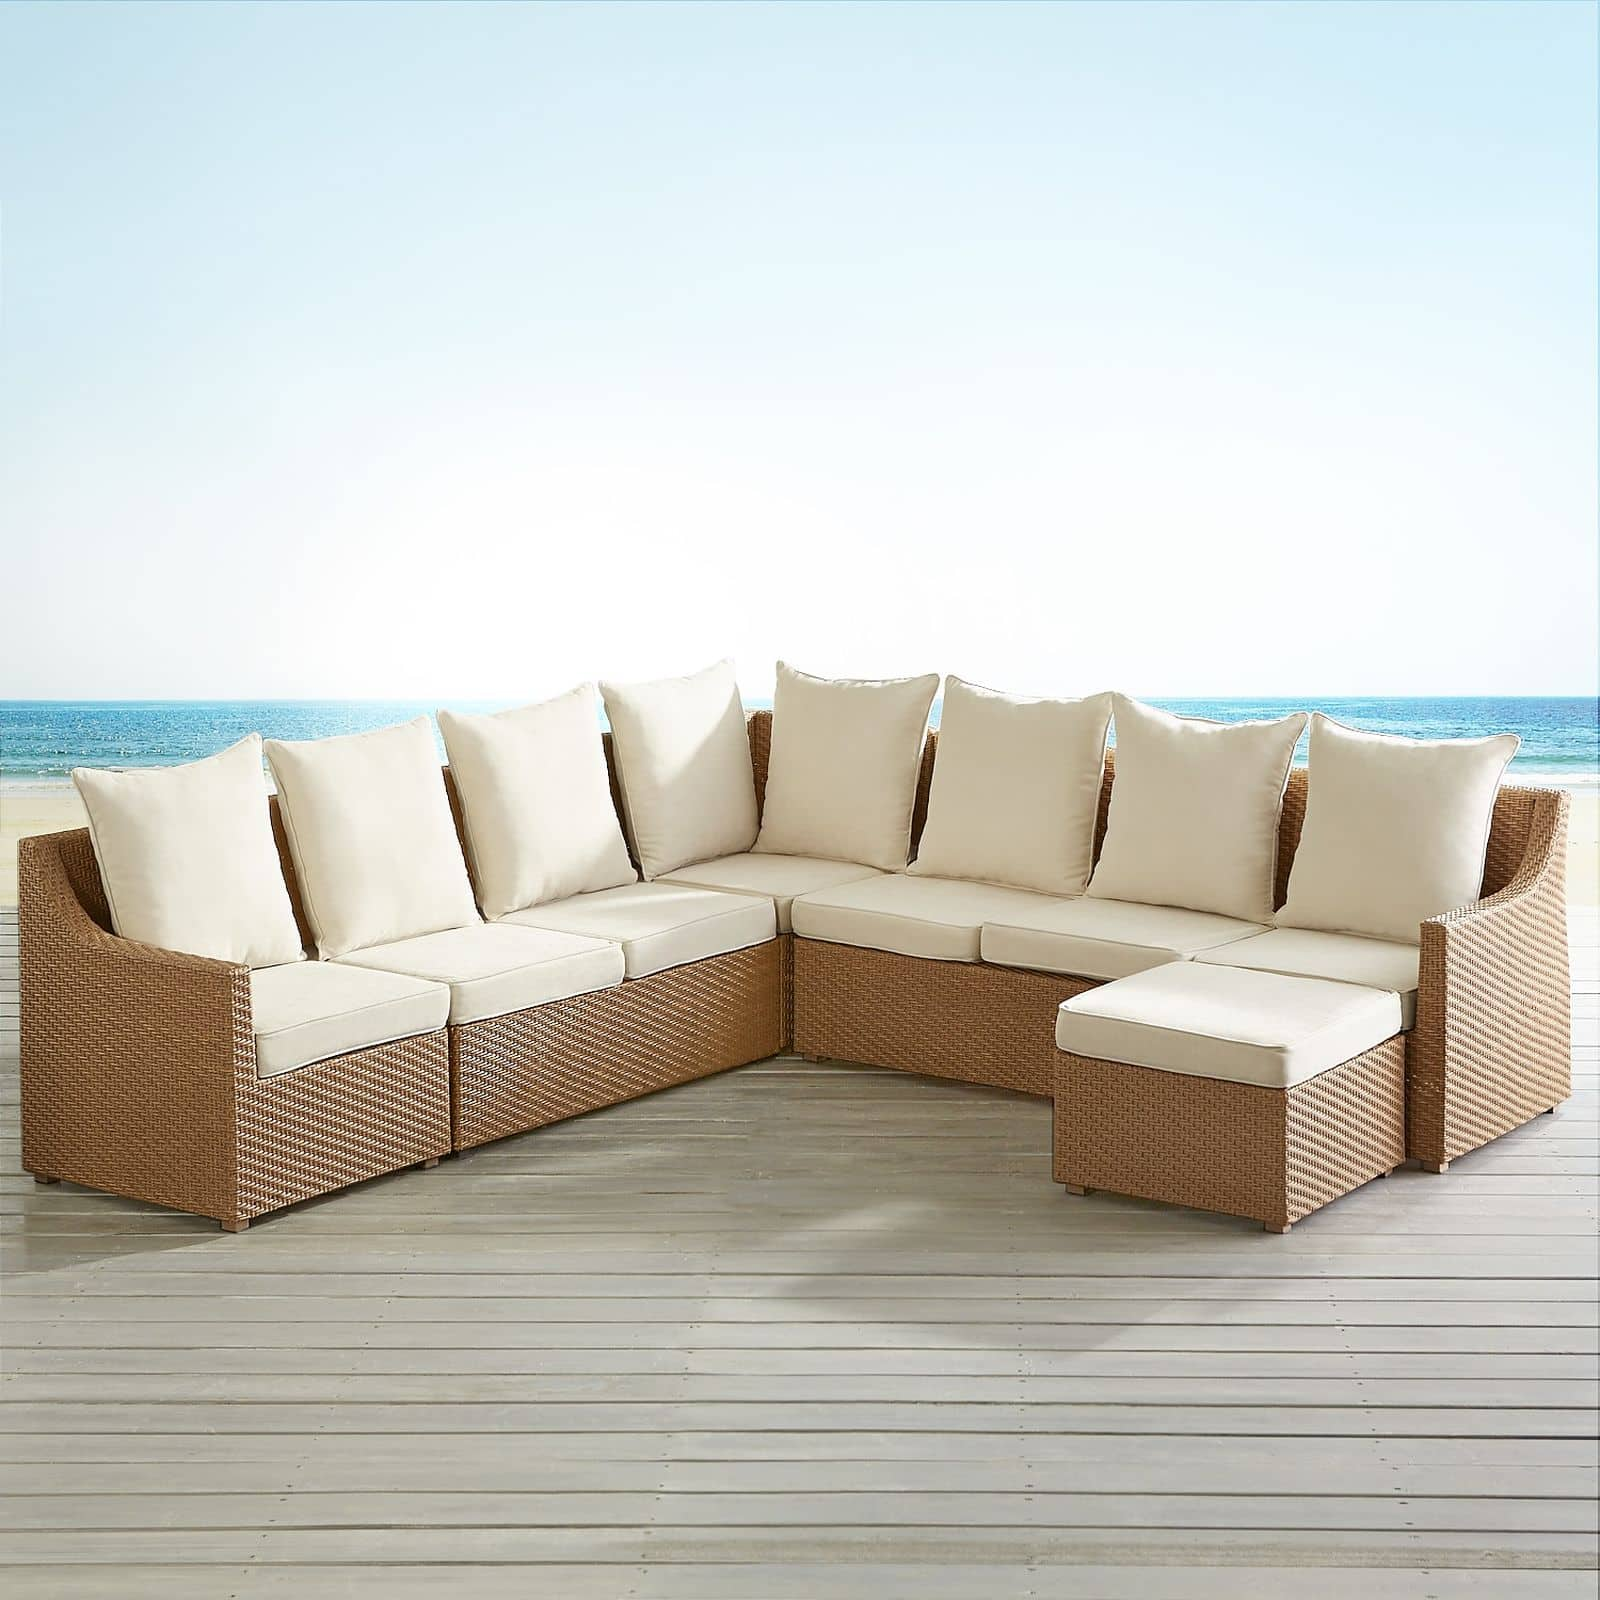 Ciudad Collection Light Brown Build Your Own Sectional - up to 88% OFF $29.98